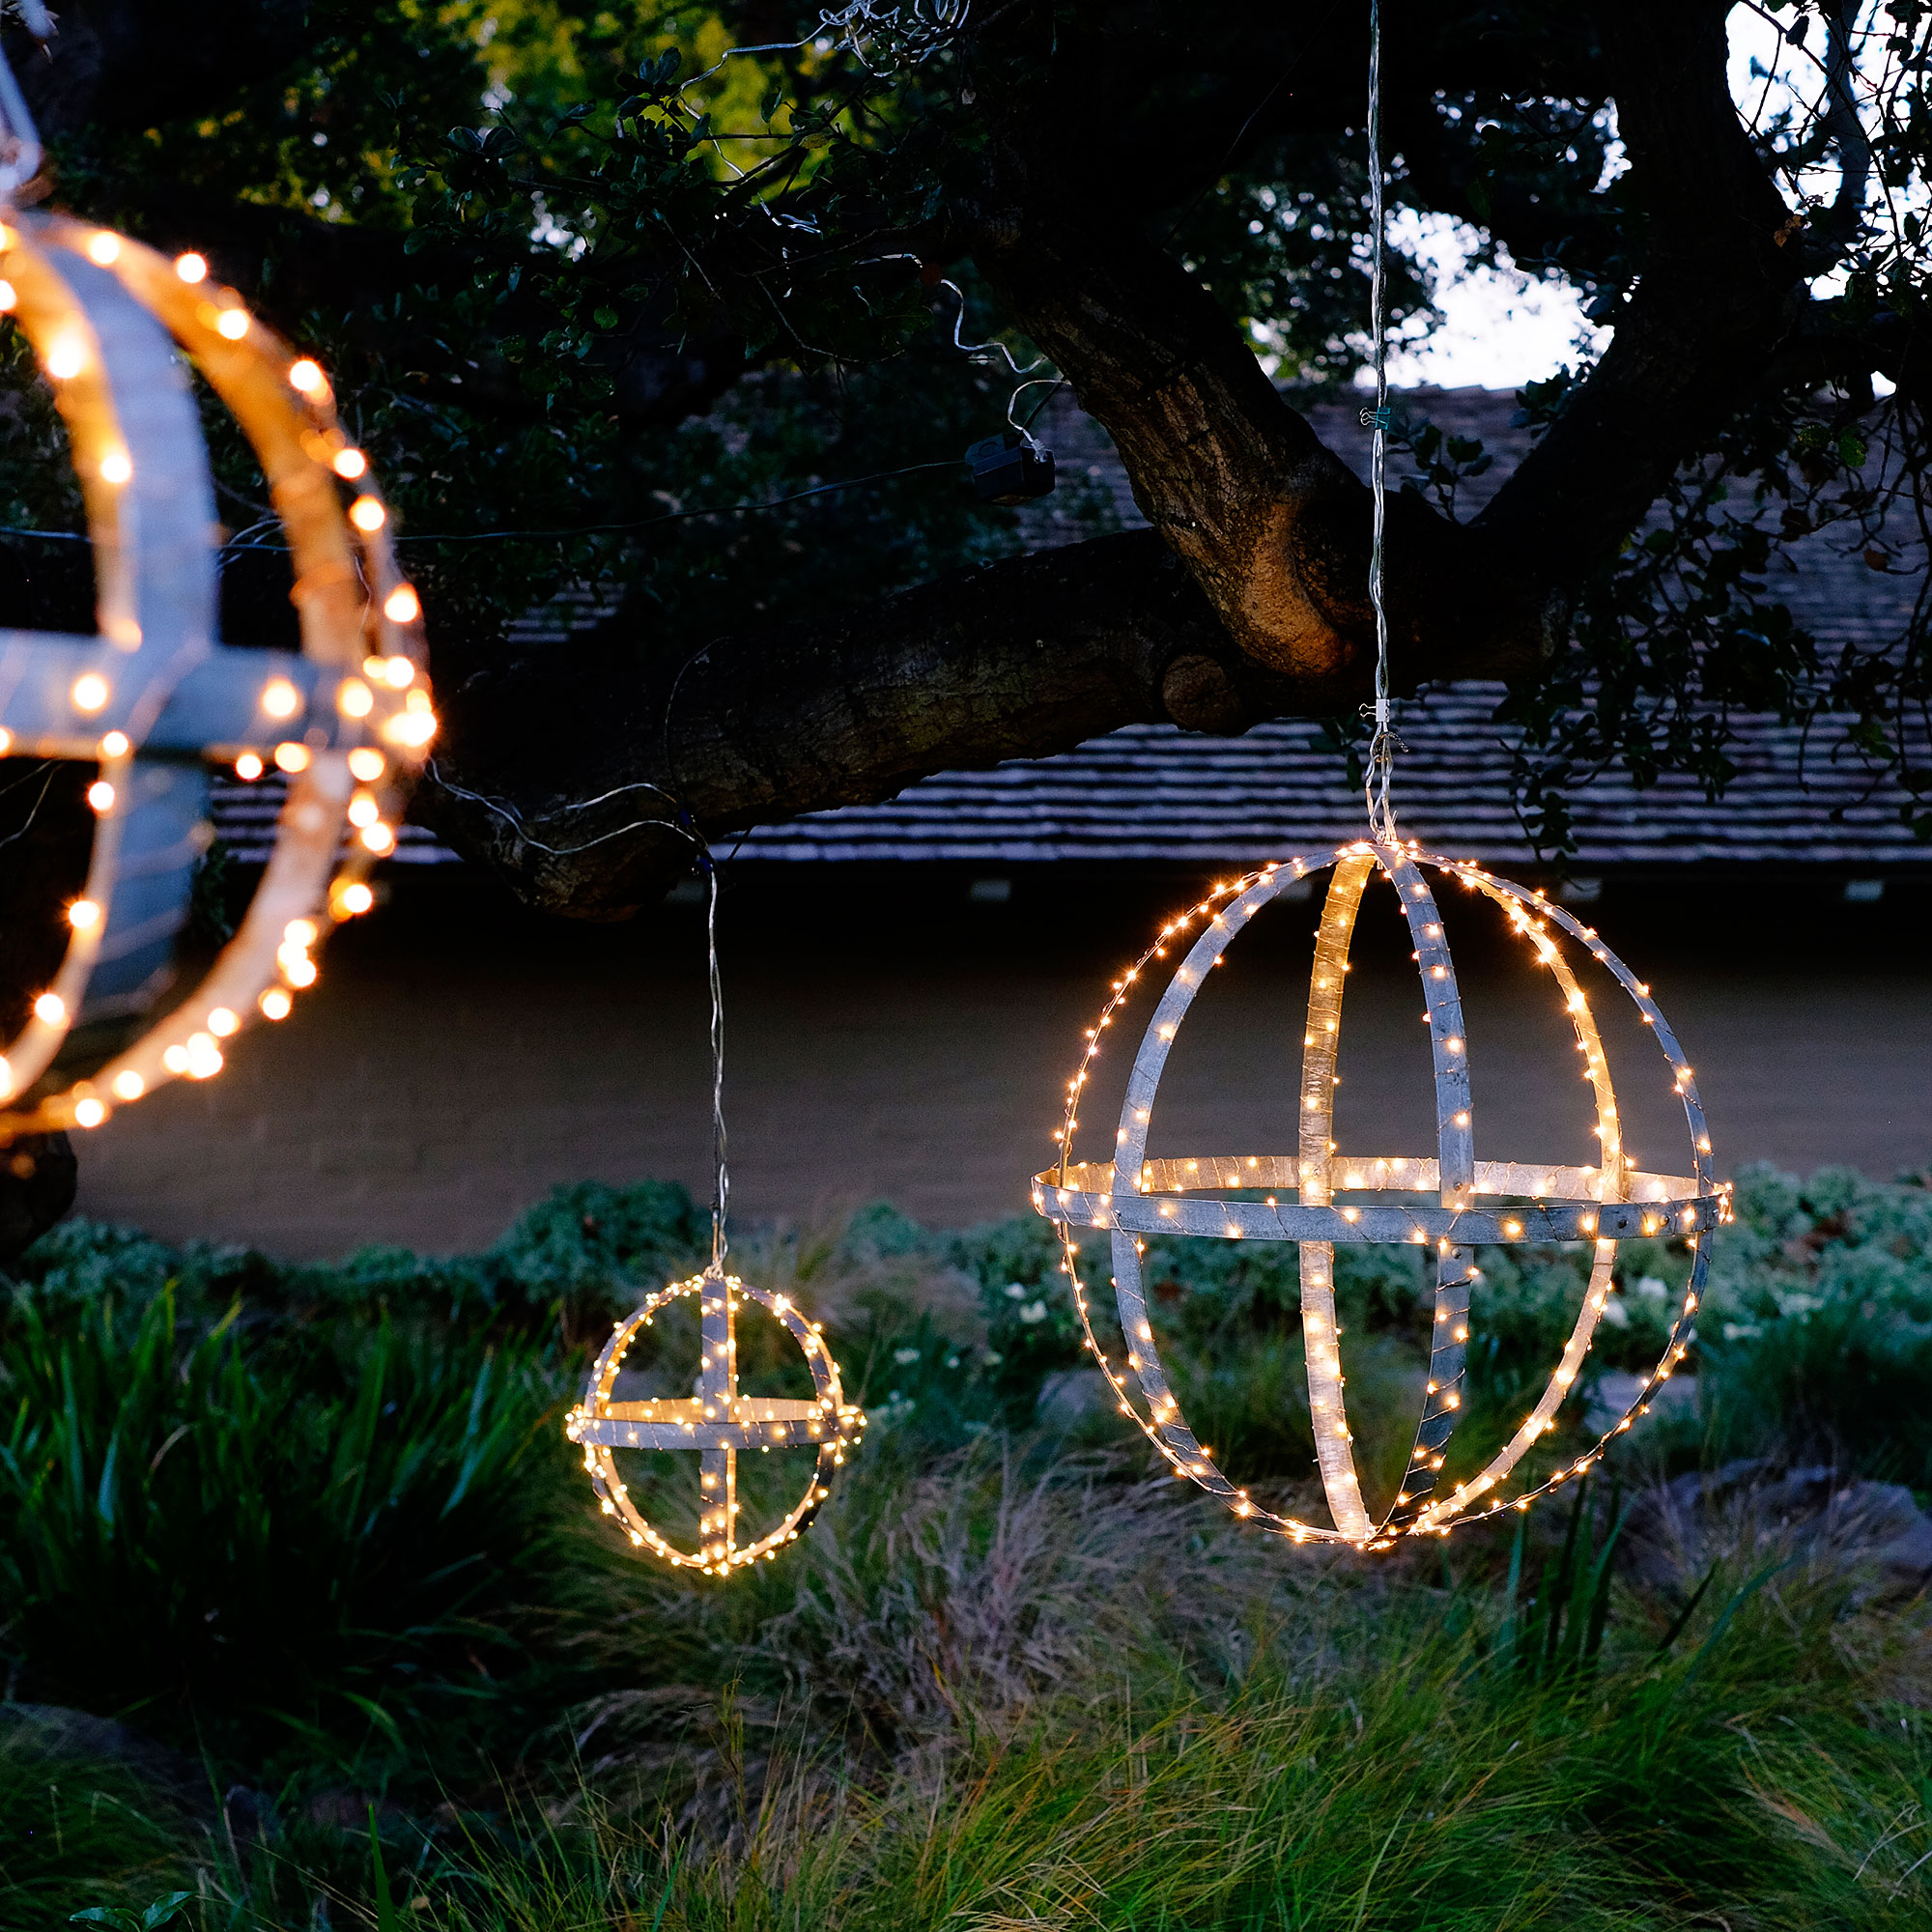 7 Ideas for Outdoor Holiday Lights - Sunset Magazine